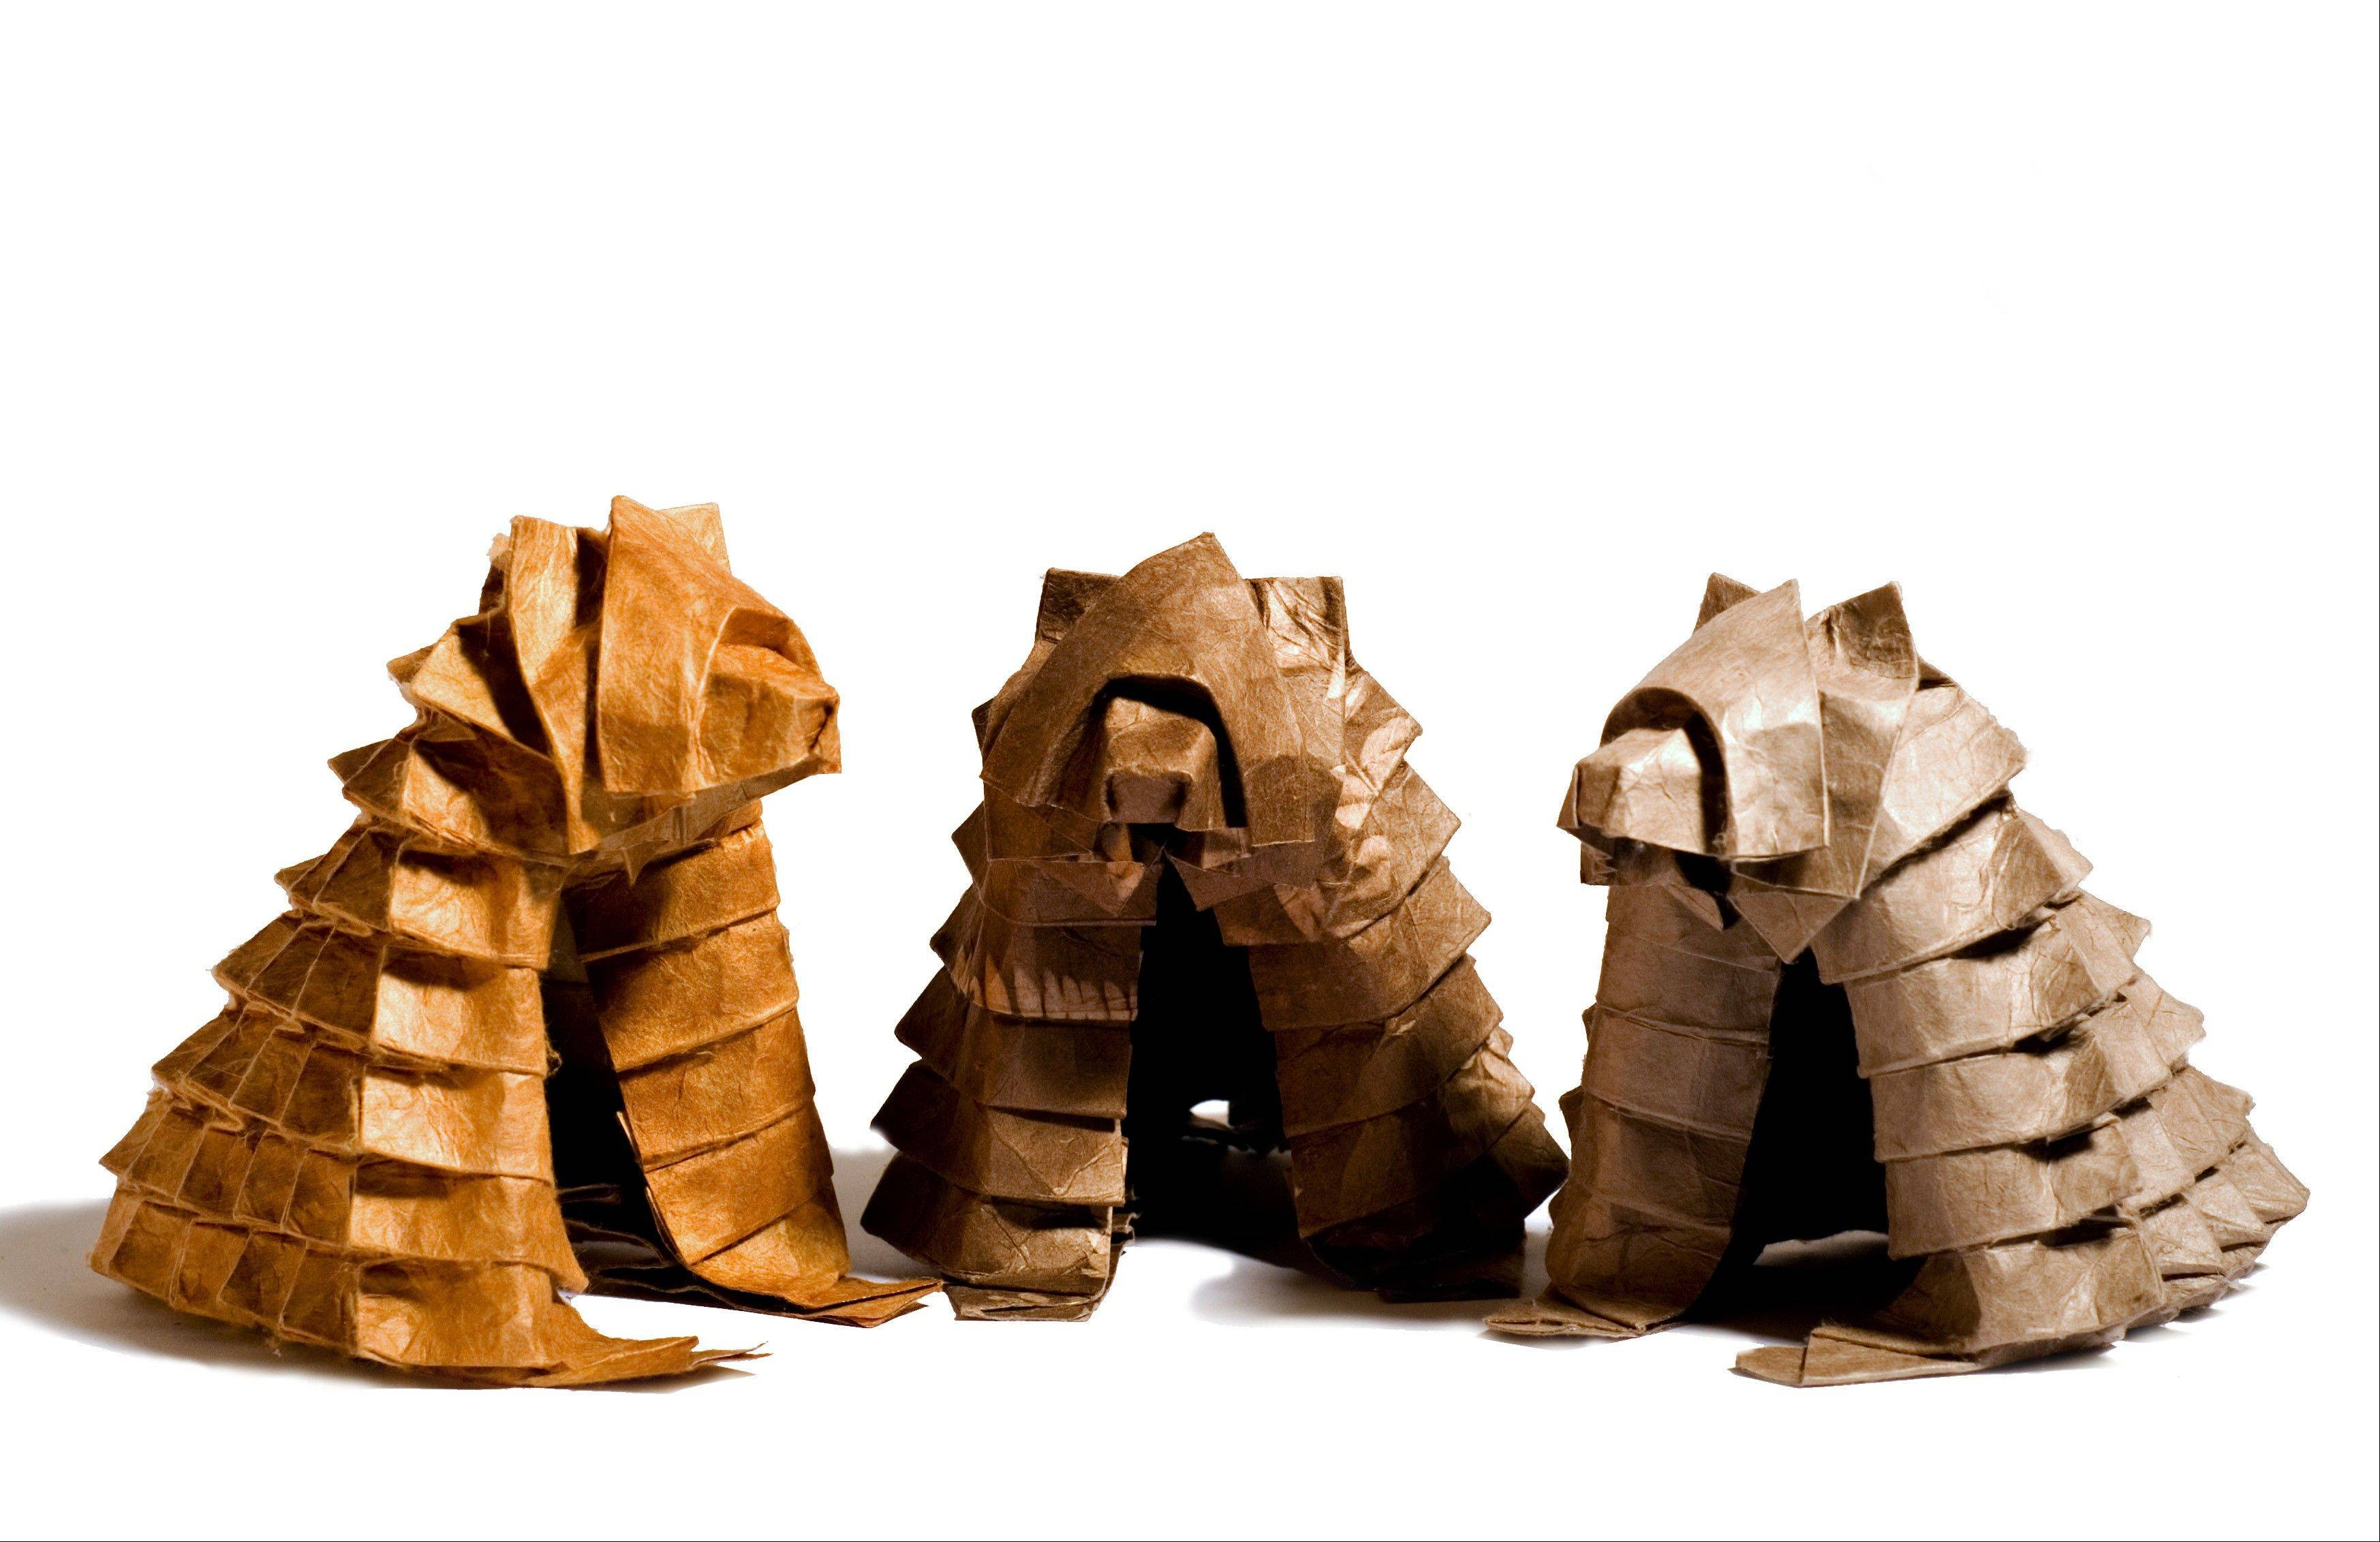 Origami artist Beth Johnson designed these origami bears folded from a single sheet of paper with cuts or glue.